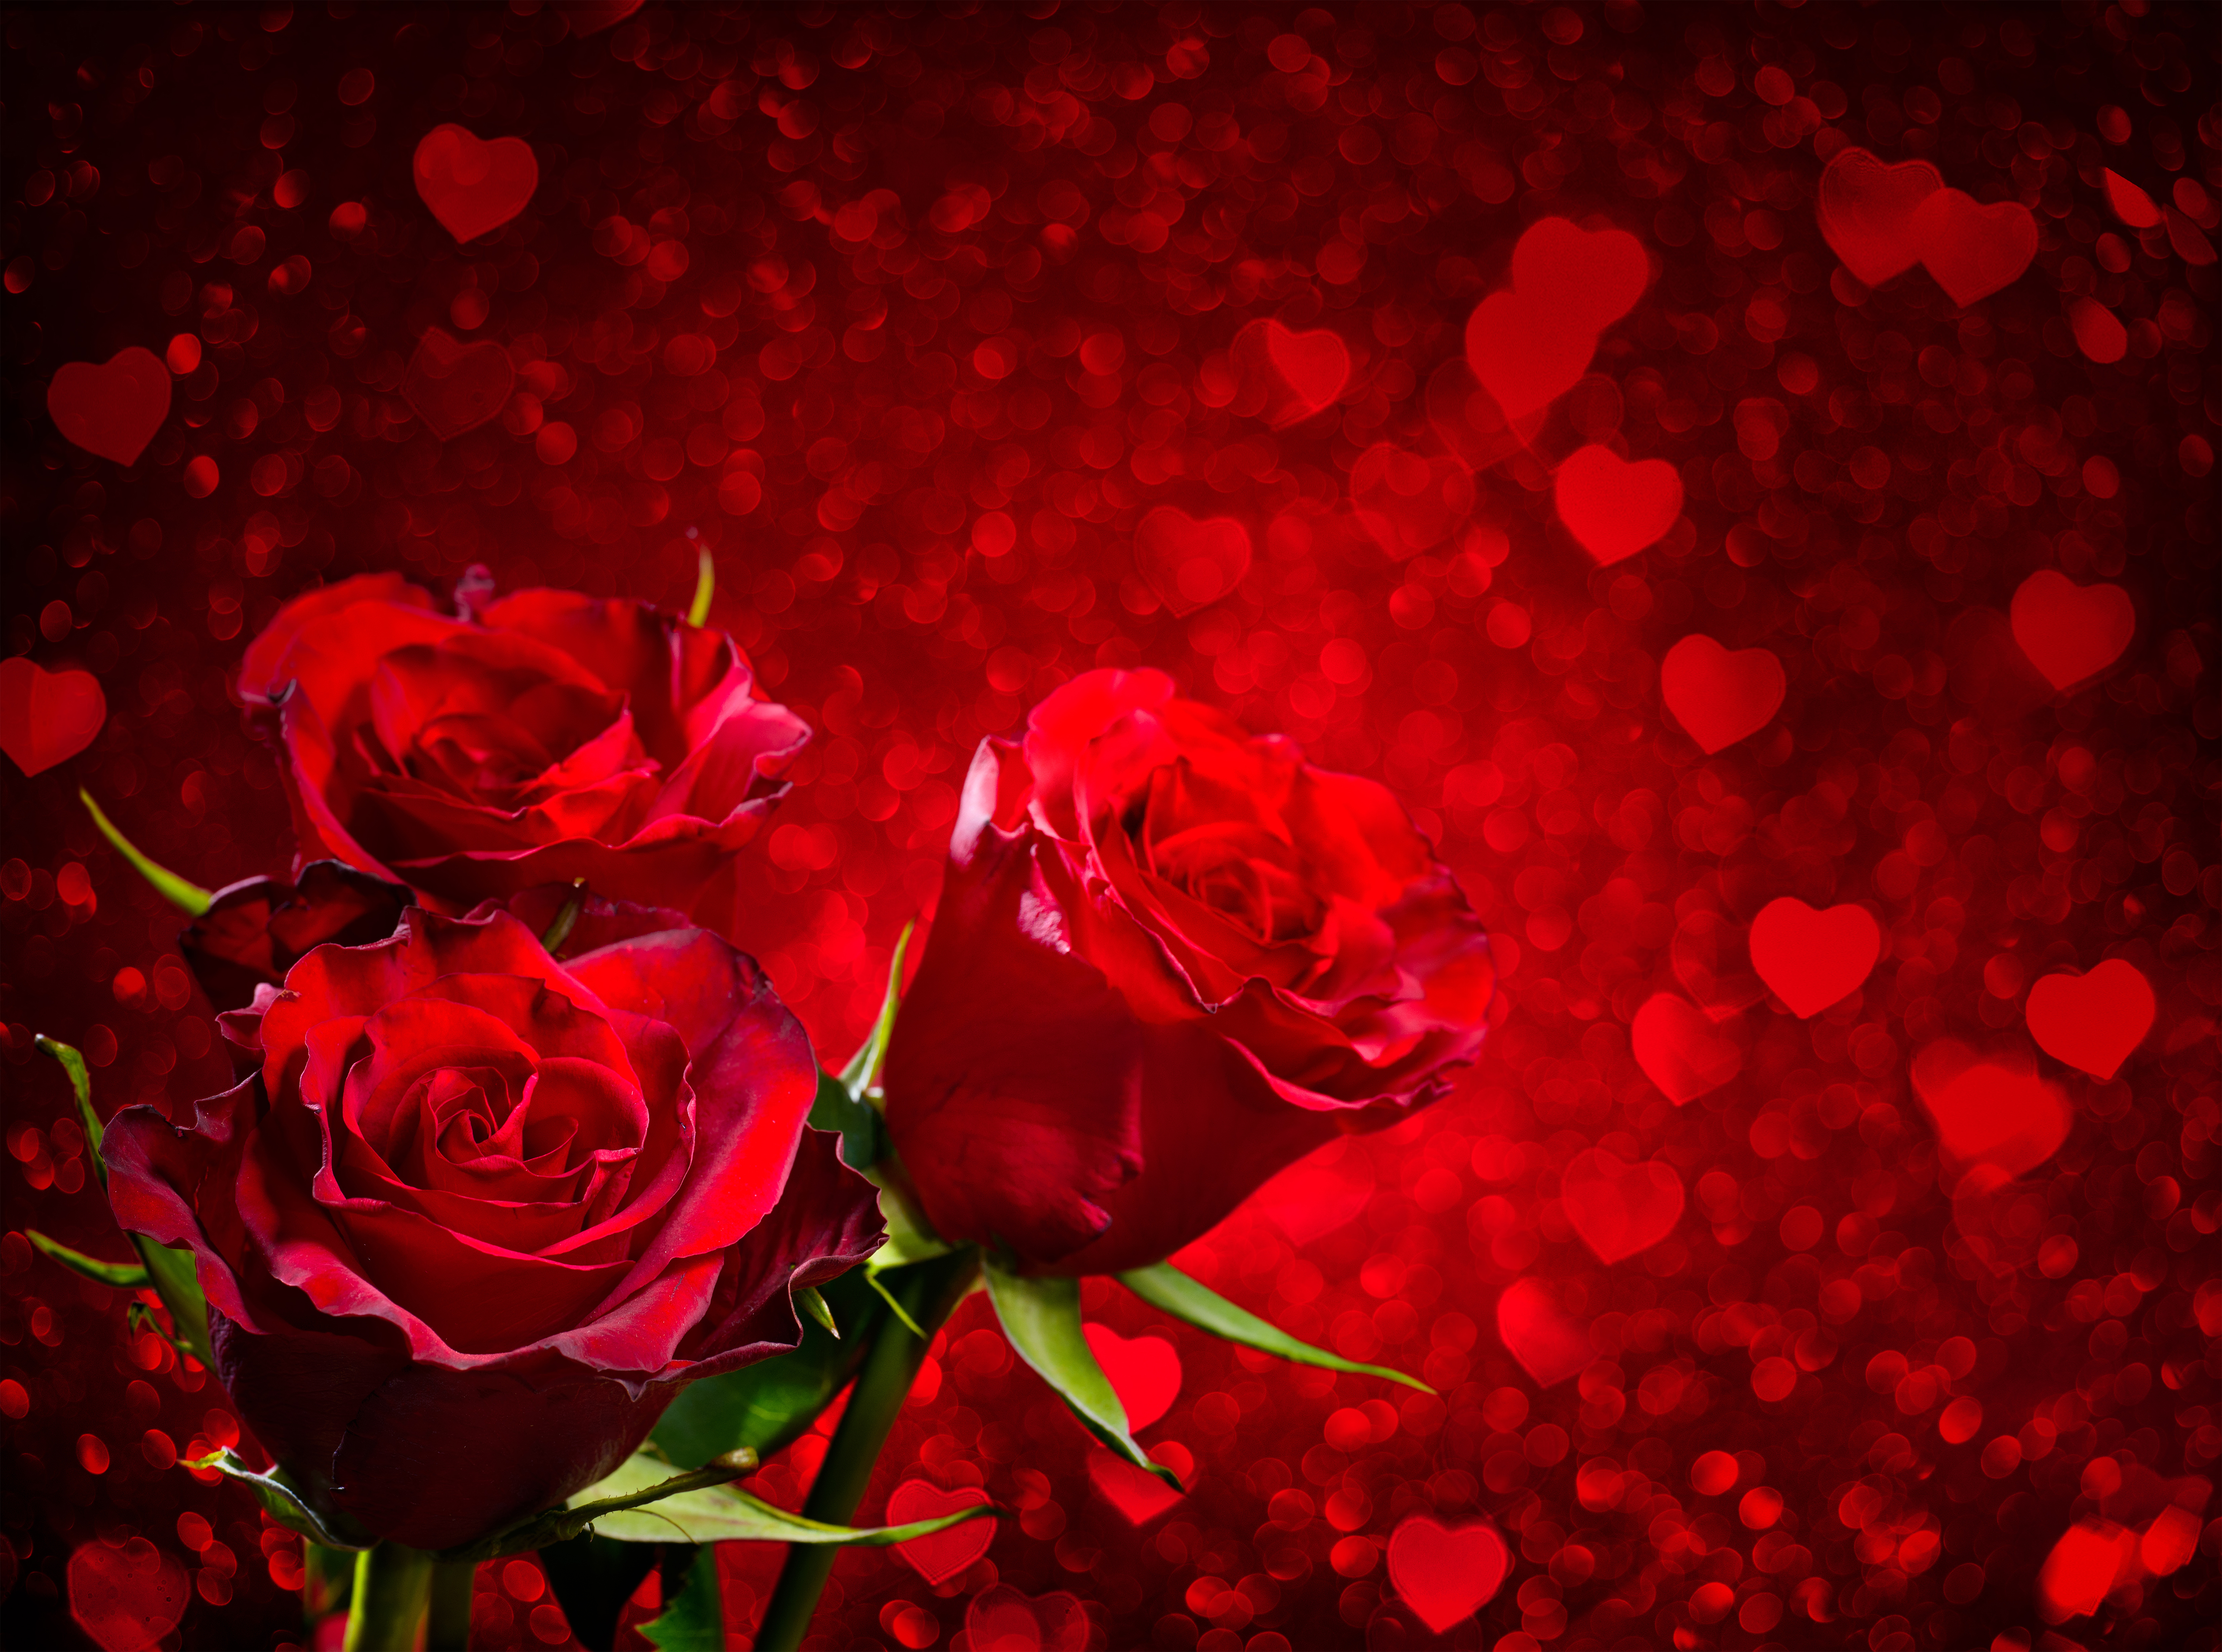 heart and roses background - photo #3